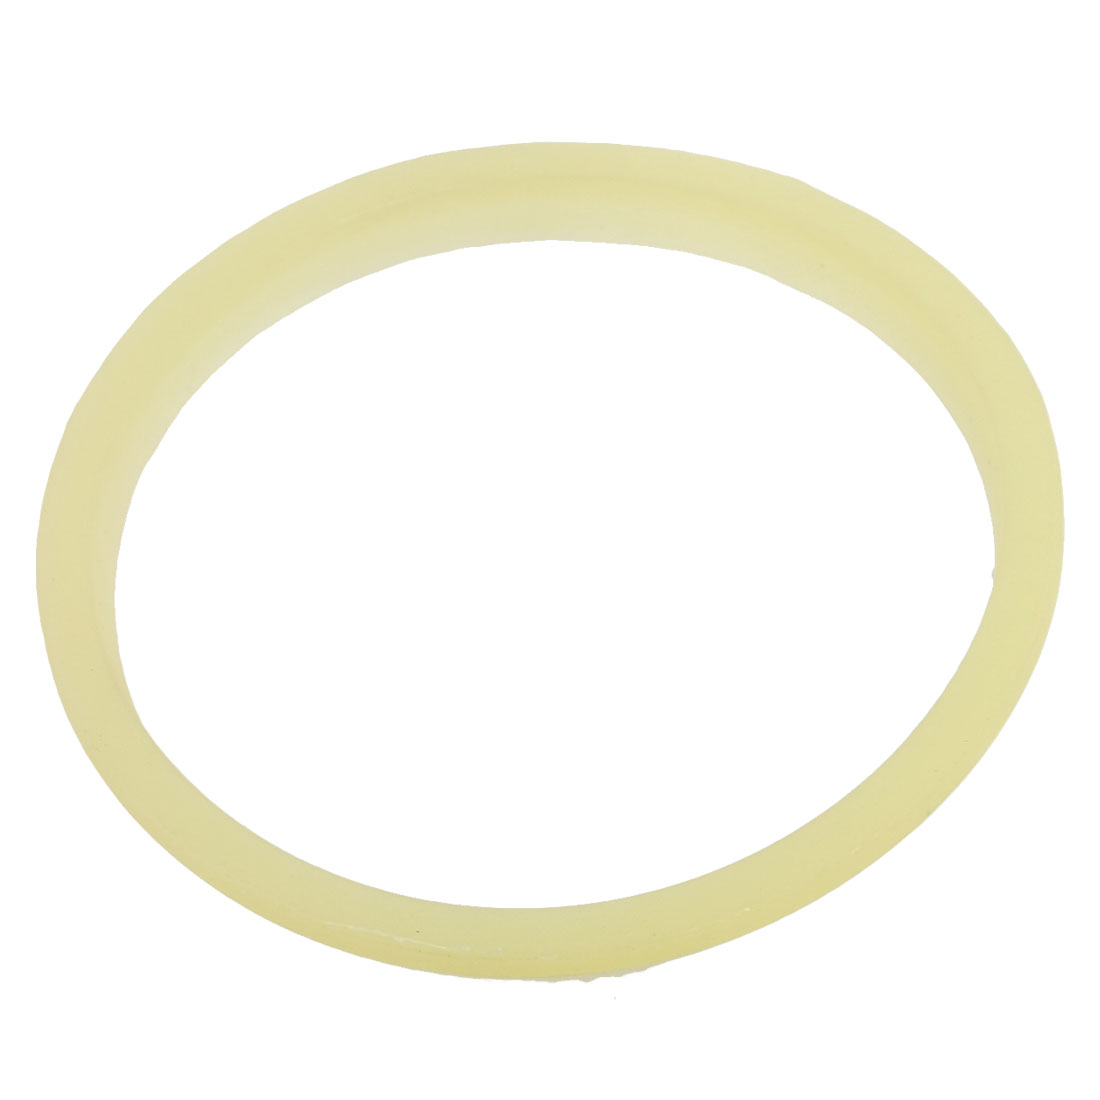 90mm x 102mm x 4mm x 8mm J Type PU Ultrathin Rod Wiper Dust Seal